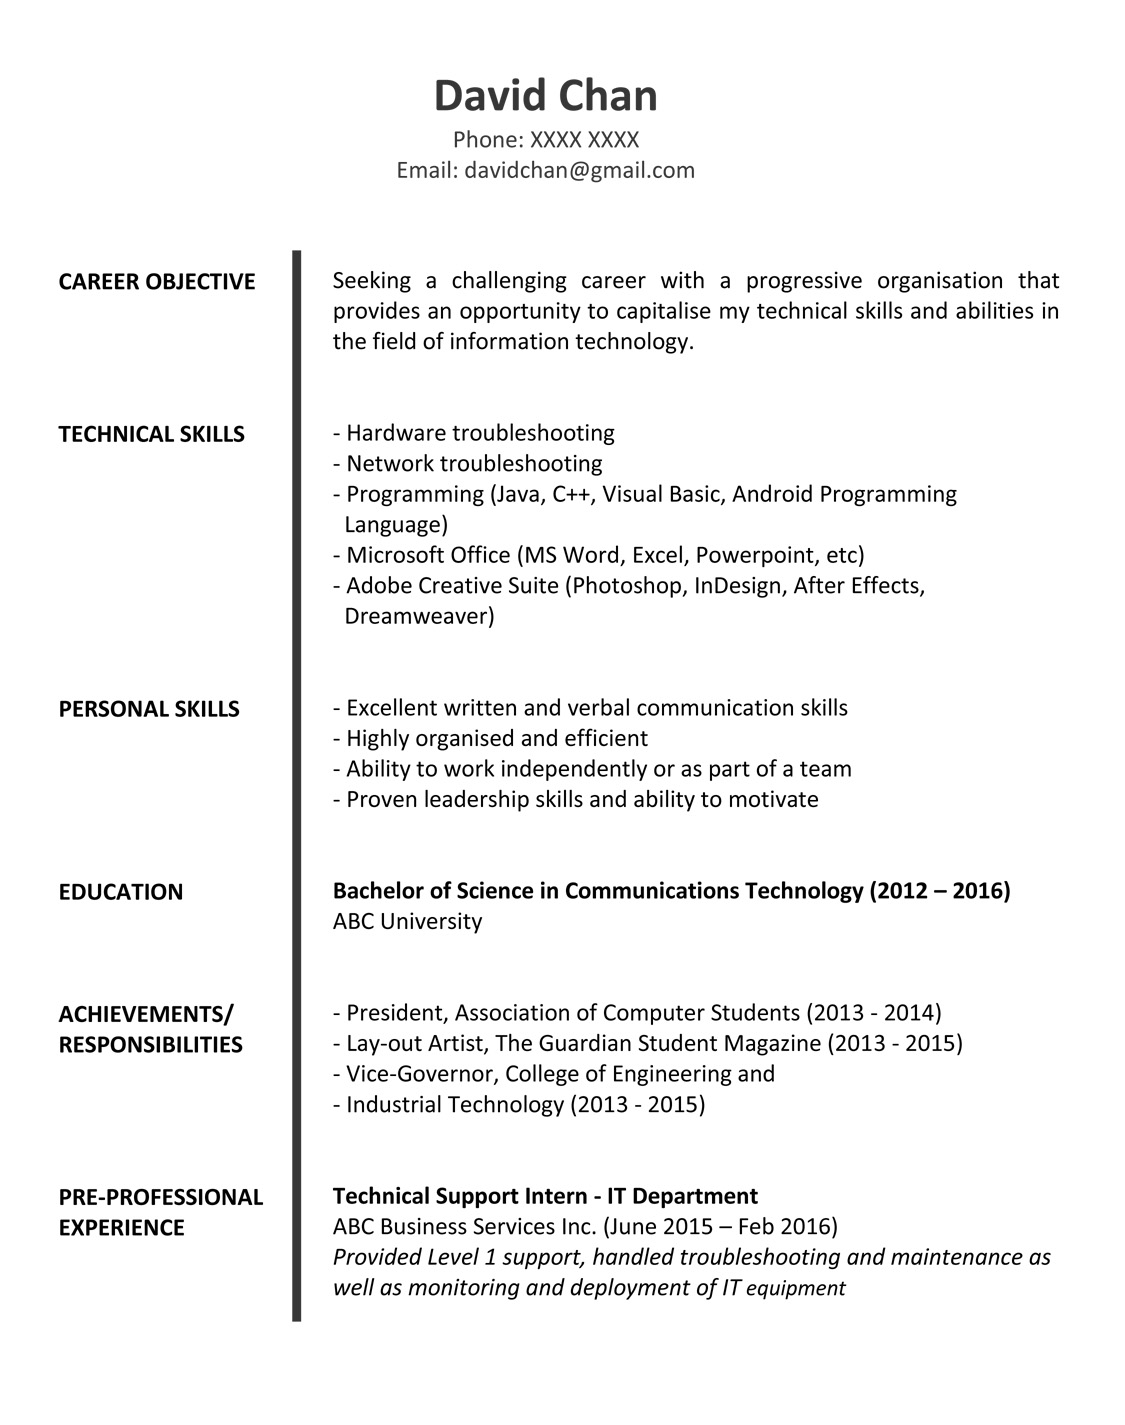 Sample resume for fresh graduates (IT professional) | jobsDB ...